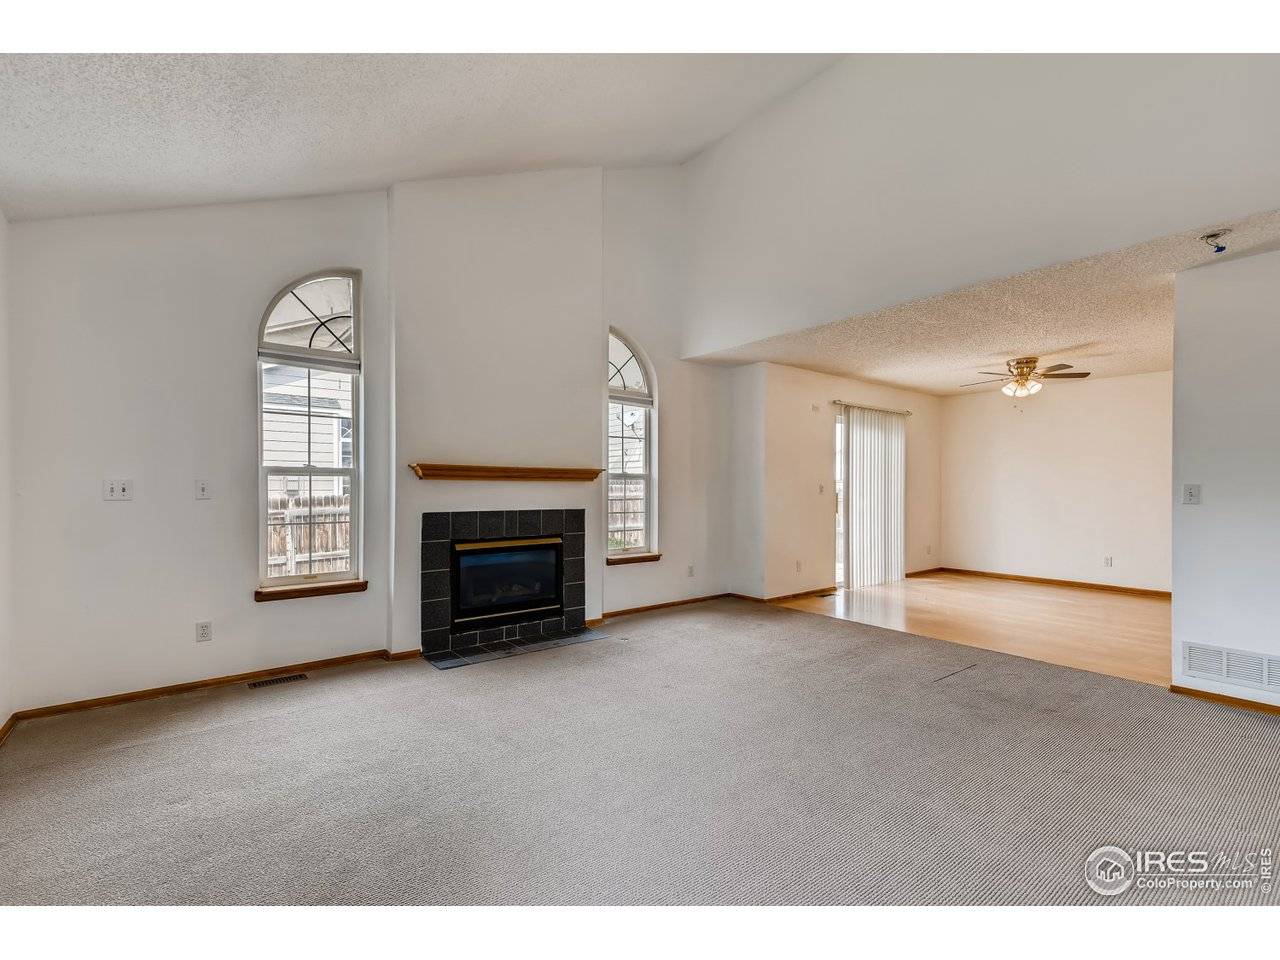 From entry - living room to dining room